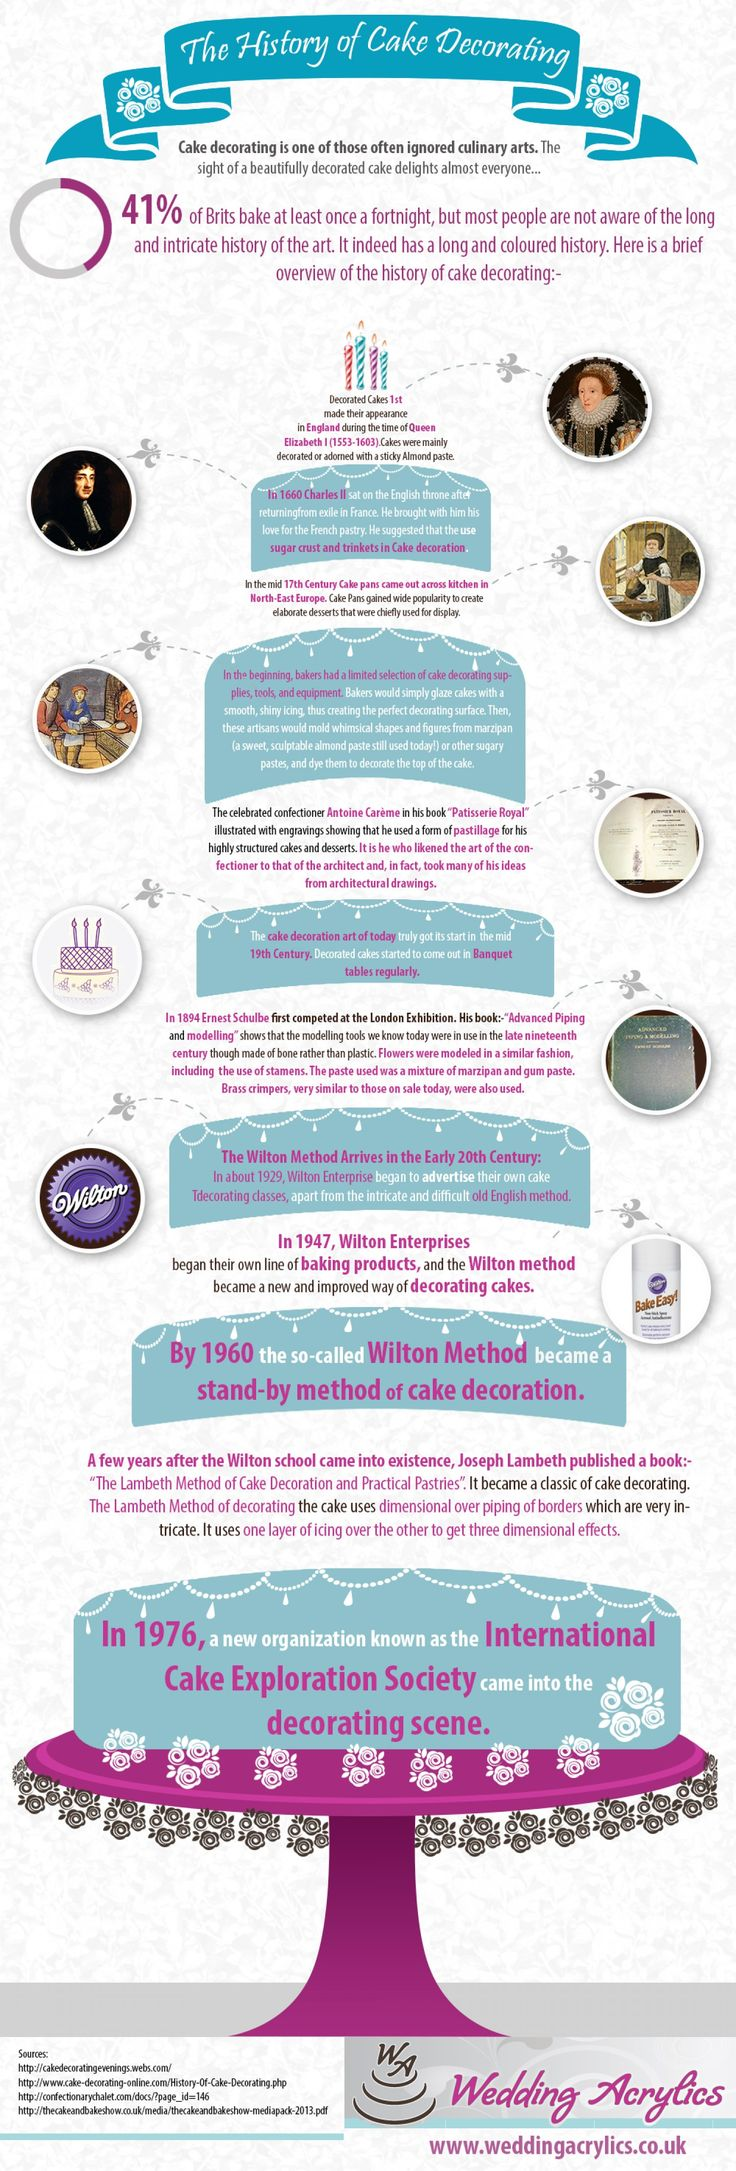 History Of Cake Decorating Timeline : Nice infographic from visual.ly with timeline of cake ...